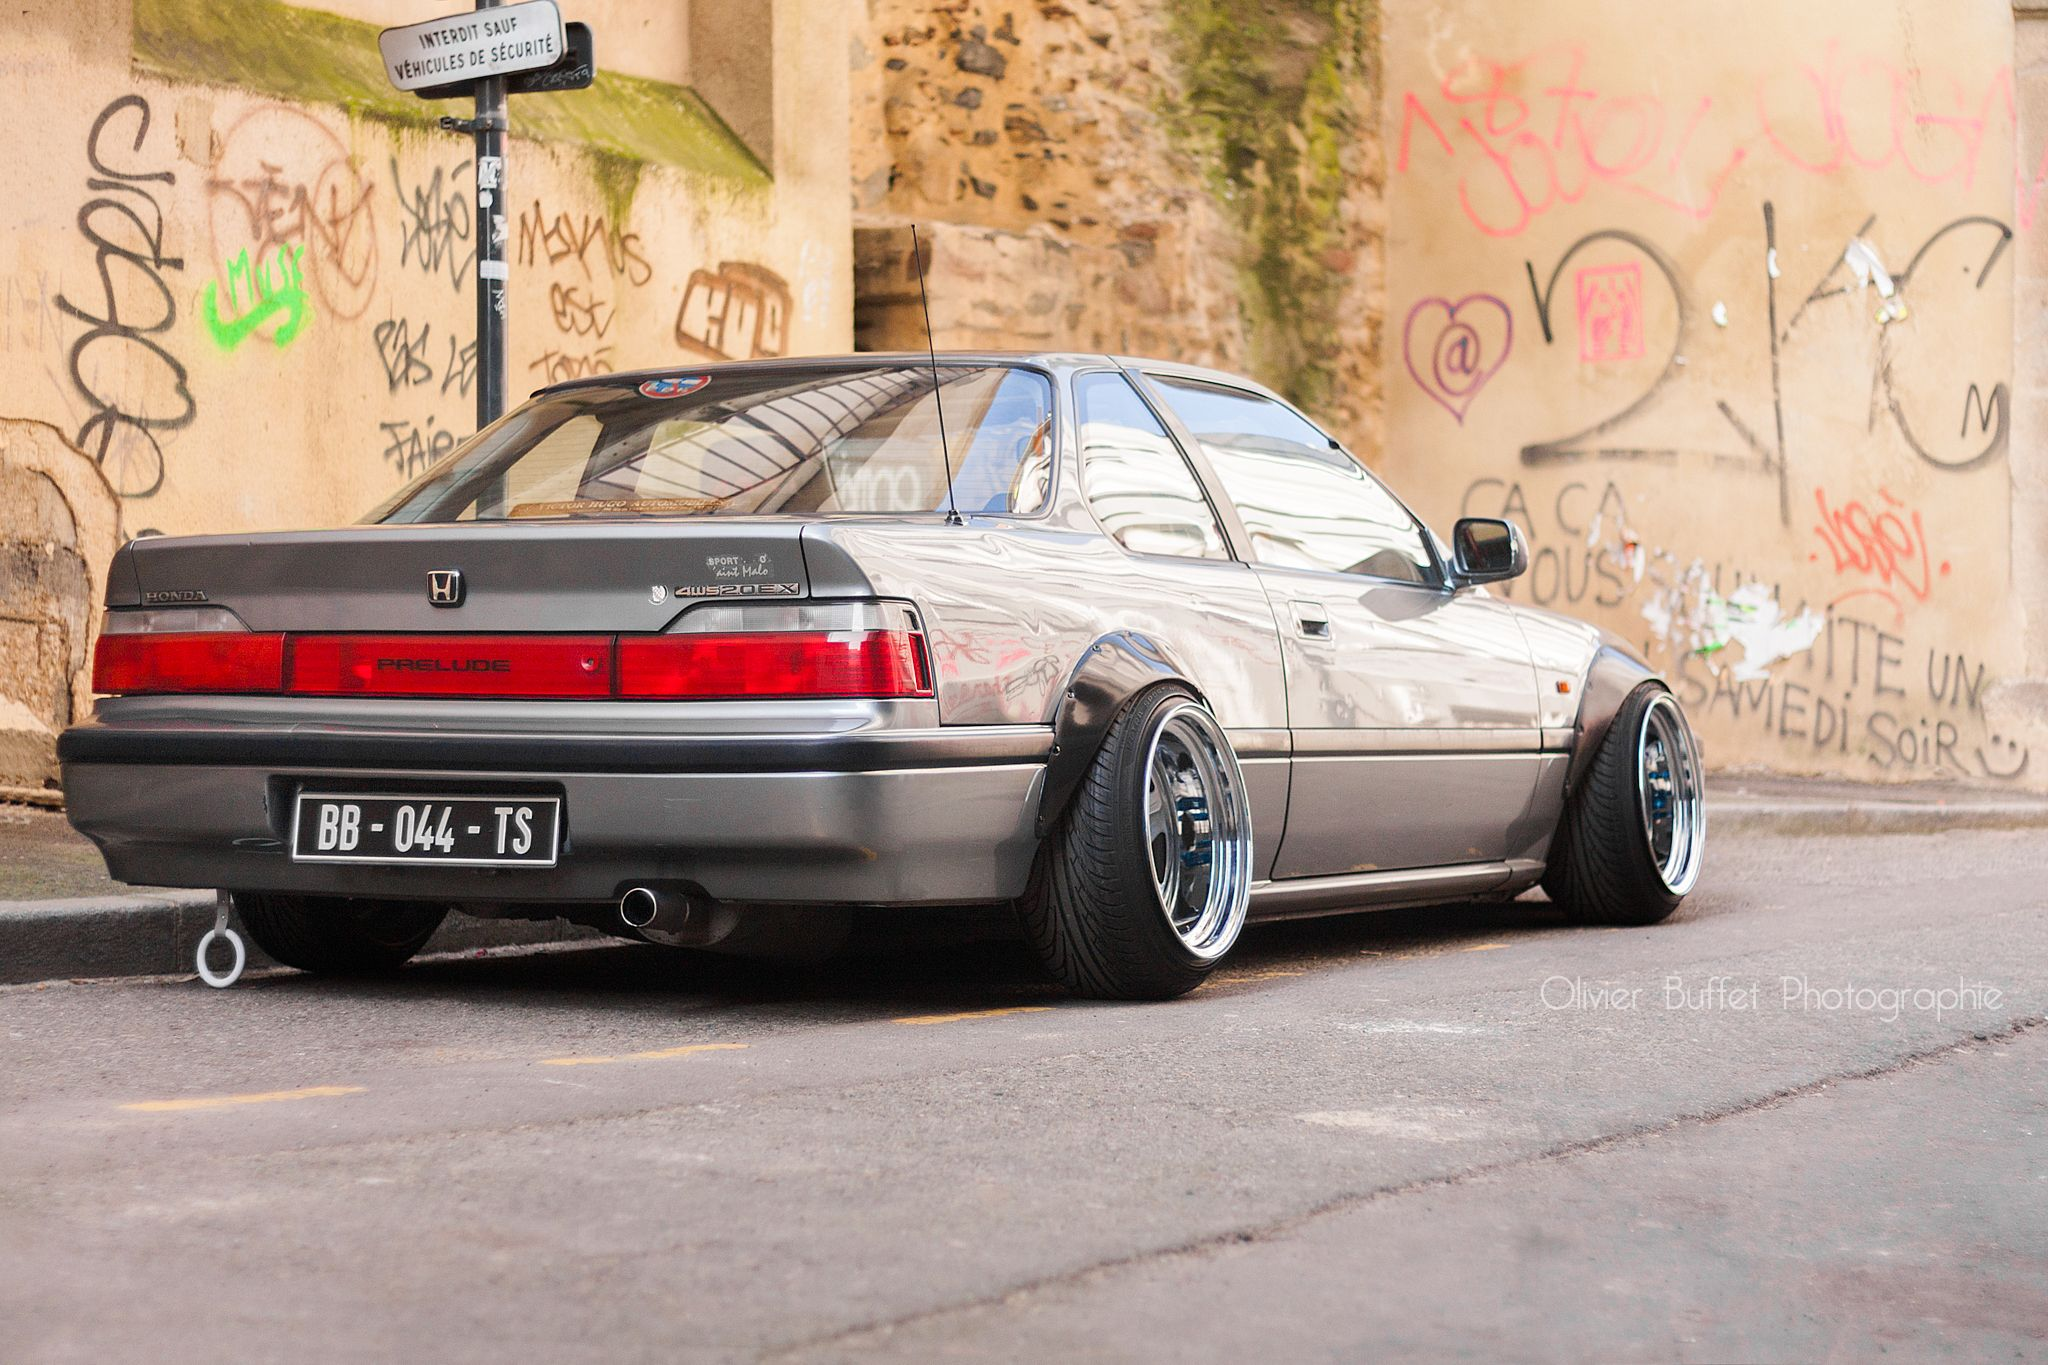 Fender flare goals (even though it's a Prelude). | Cars | Honda prelude, Jdm cars, Car show